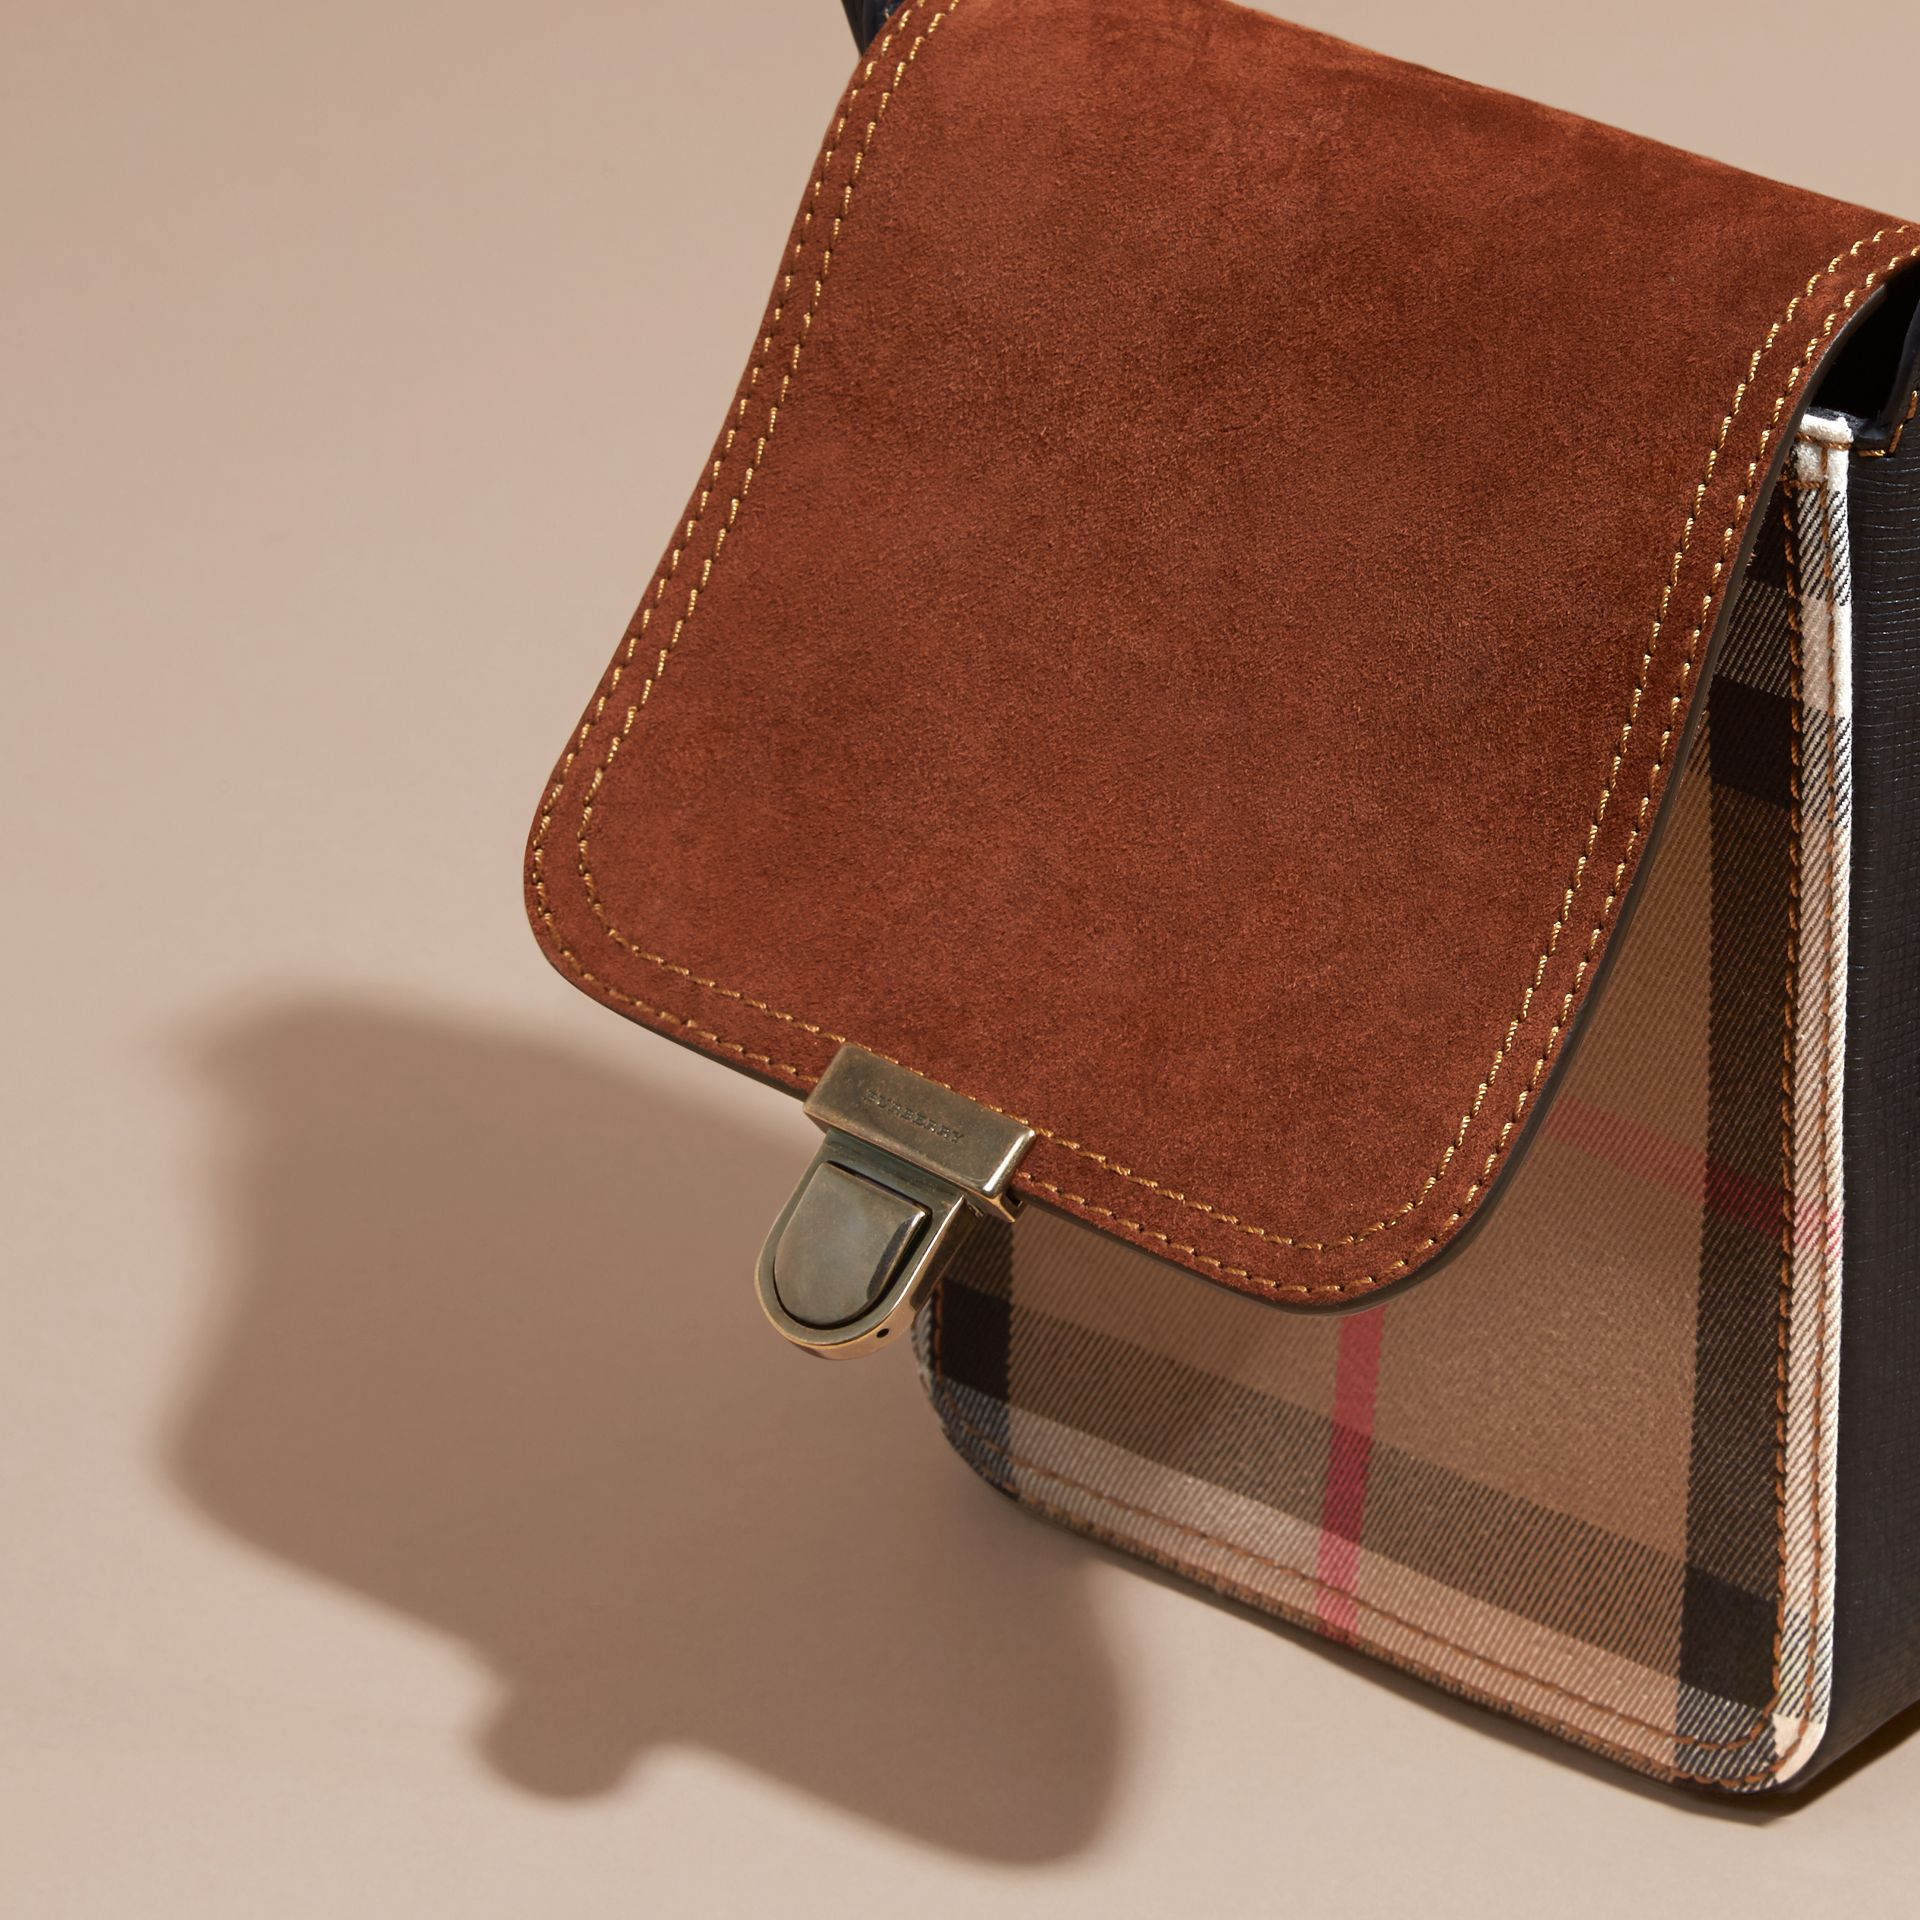 Russet brown The Small Satchel in English Suede and House Check Russet Brown - gallery image 5